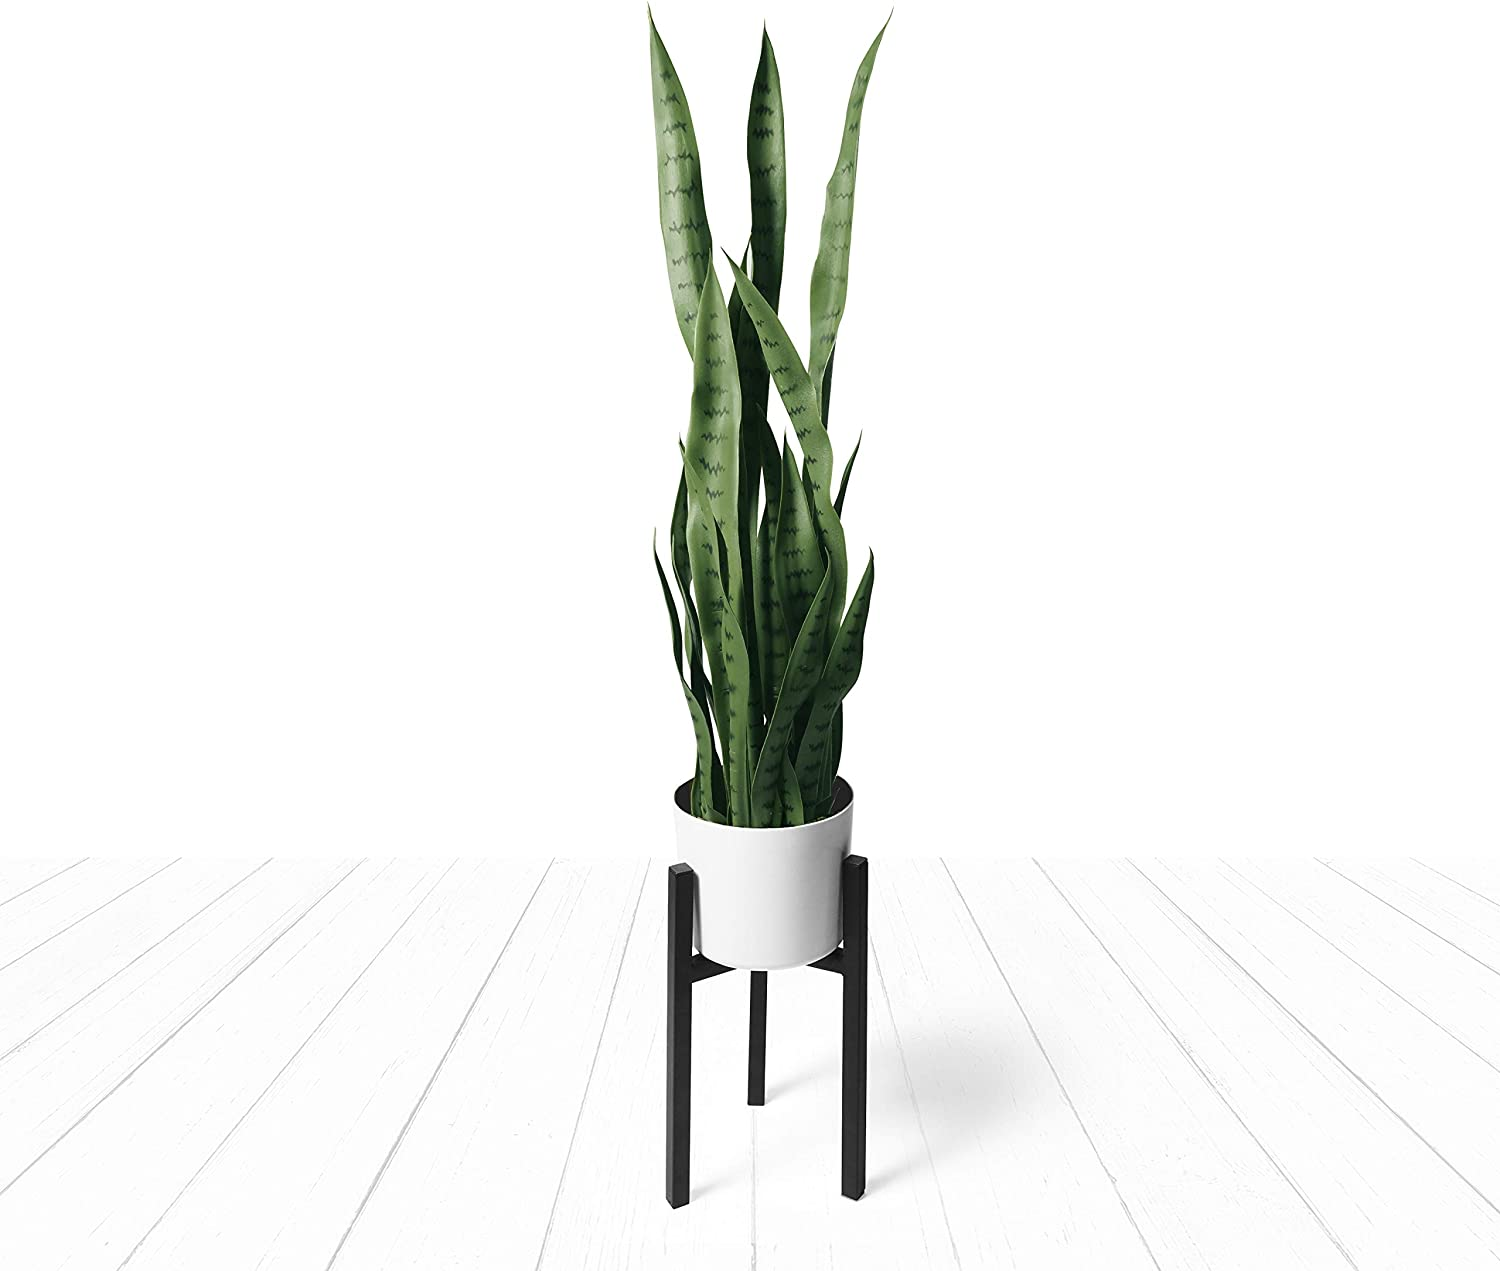 Artificial Snake Plant Fake Sansevieria Plants 38 Inch Tall 28 Faux Green Large Leaves with White Pot and Black Stand for Home Indoor Outdoor Décor Modern House Office Floor Decoration